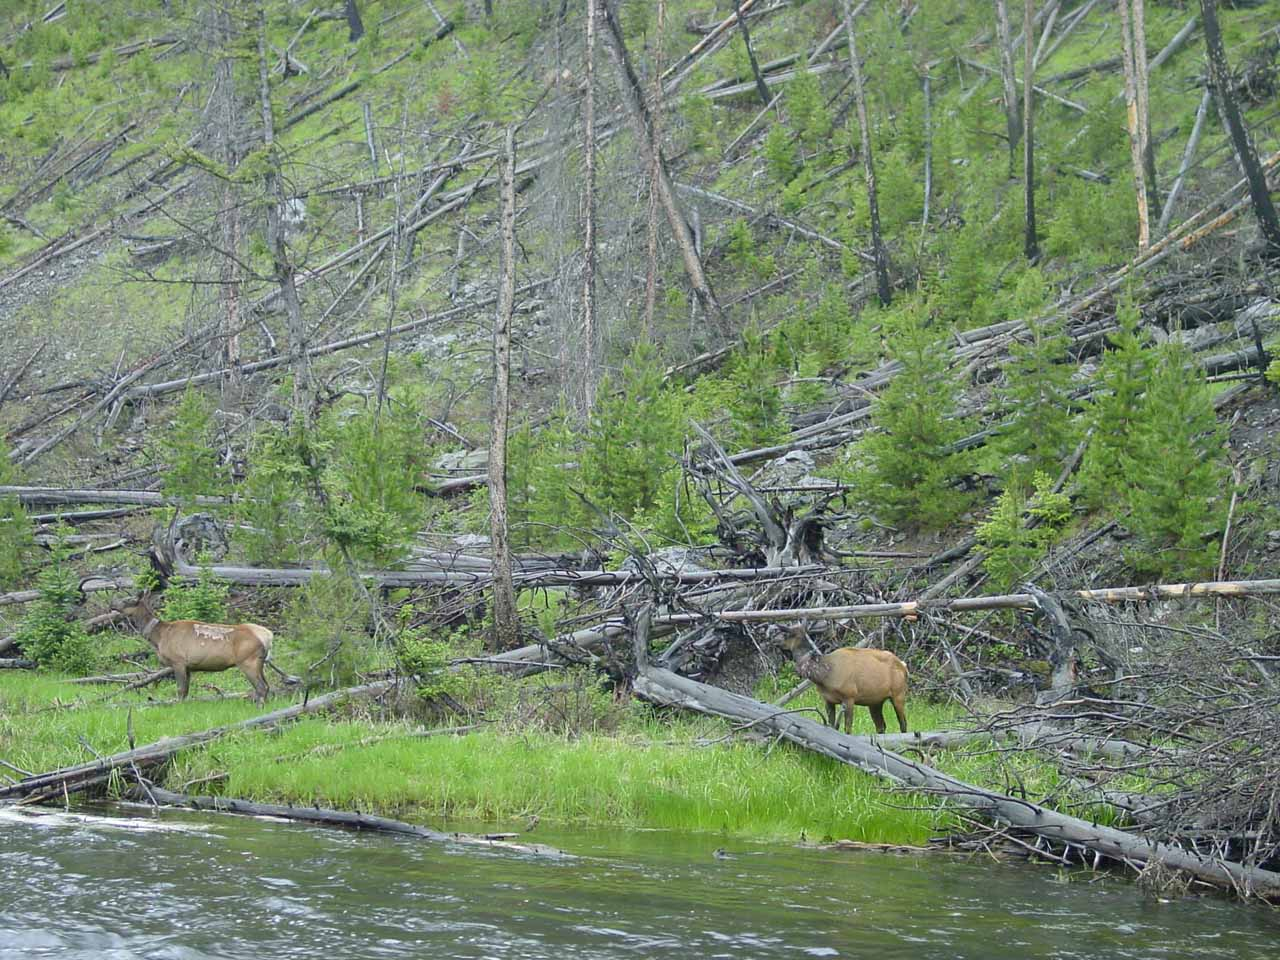 Some elk grazing by the Firehole River